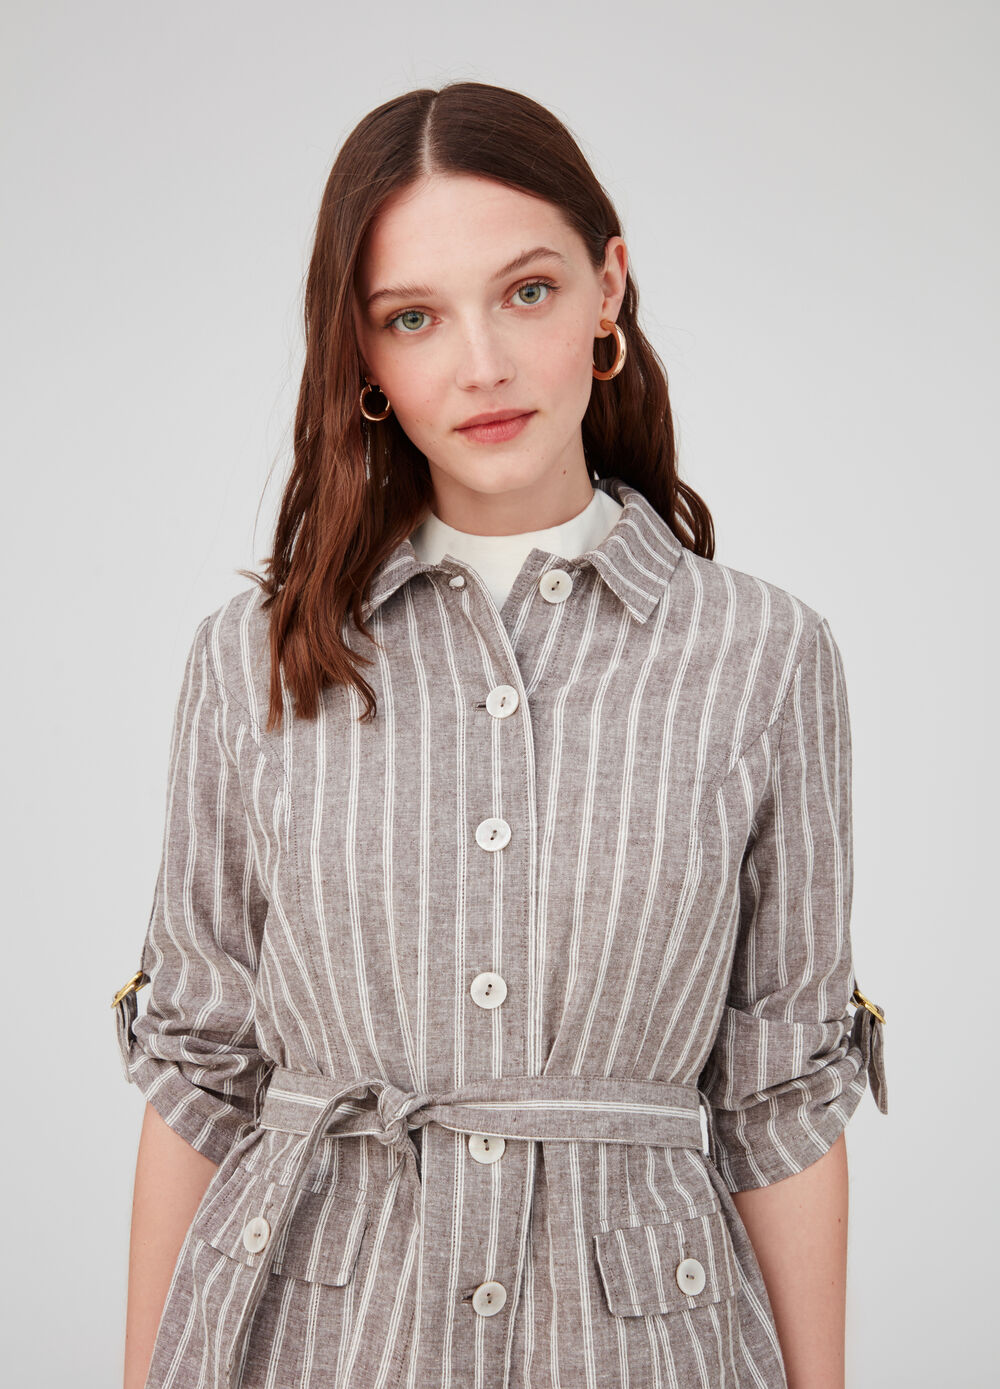 Jacket with collar, belt and striped pockets